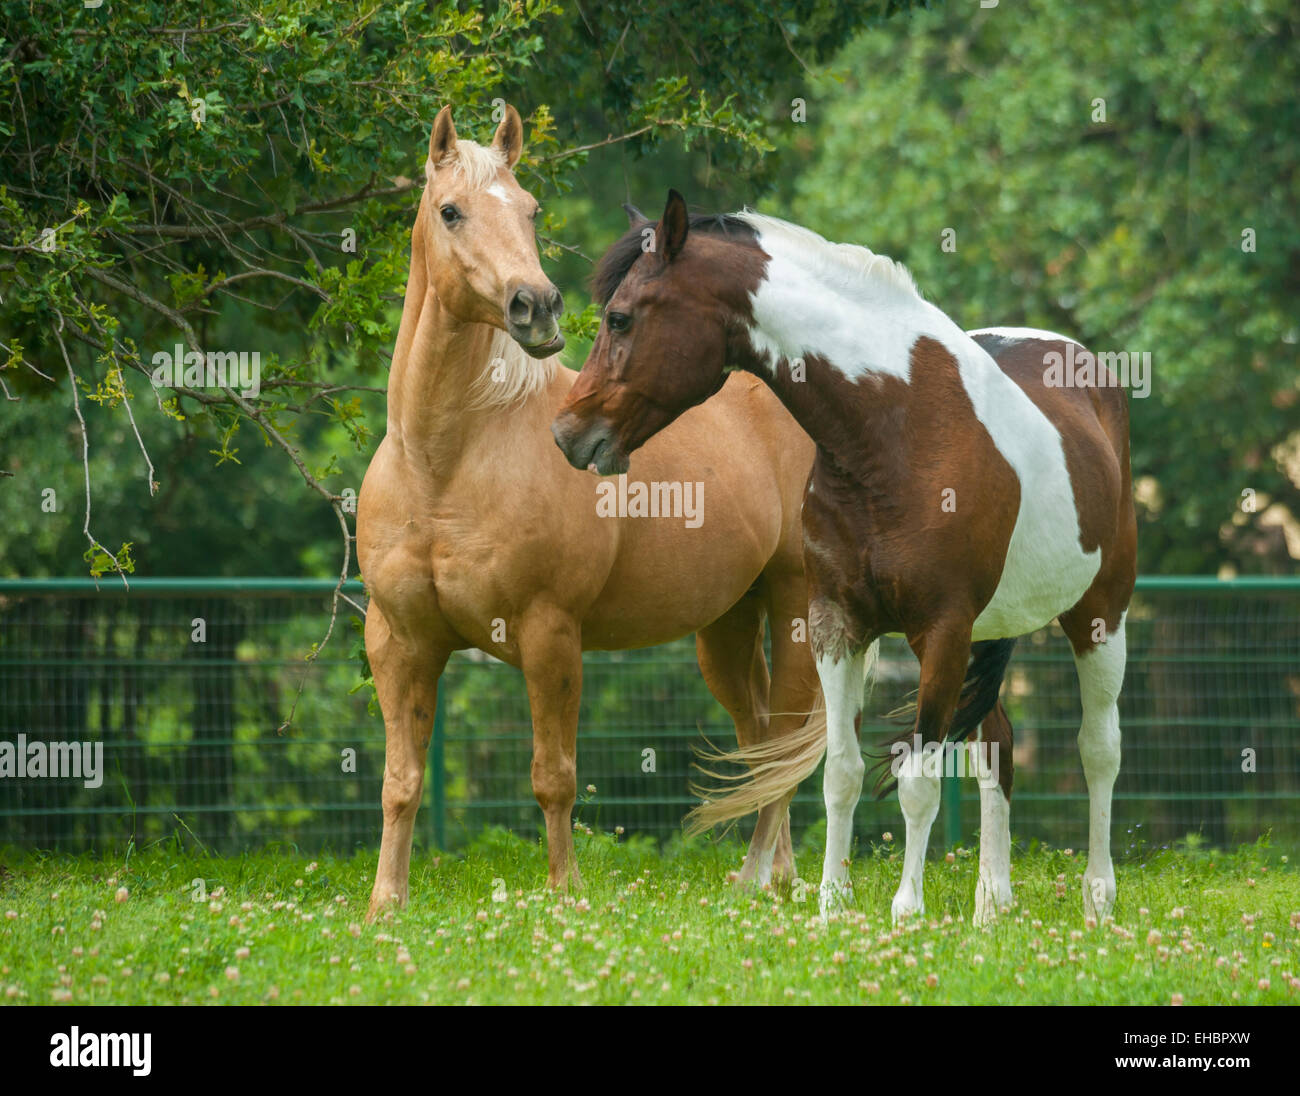 Quarter Horse gelding and Pinto National Show Horse mare - Stock Image